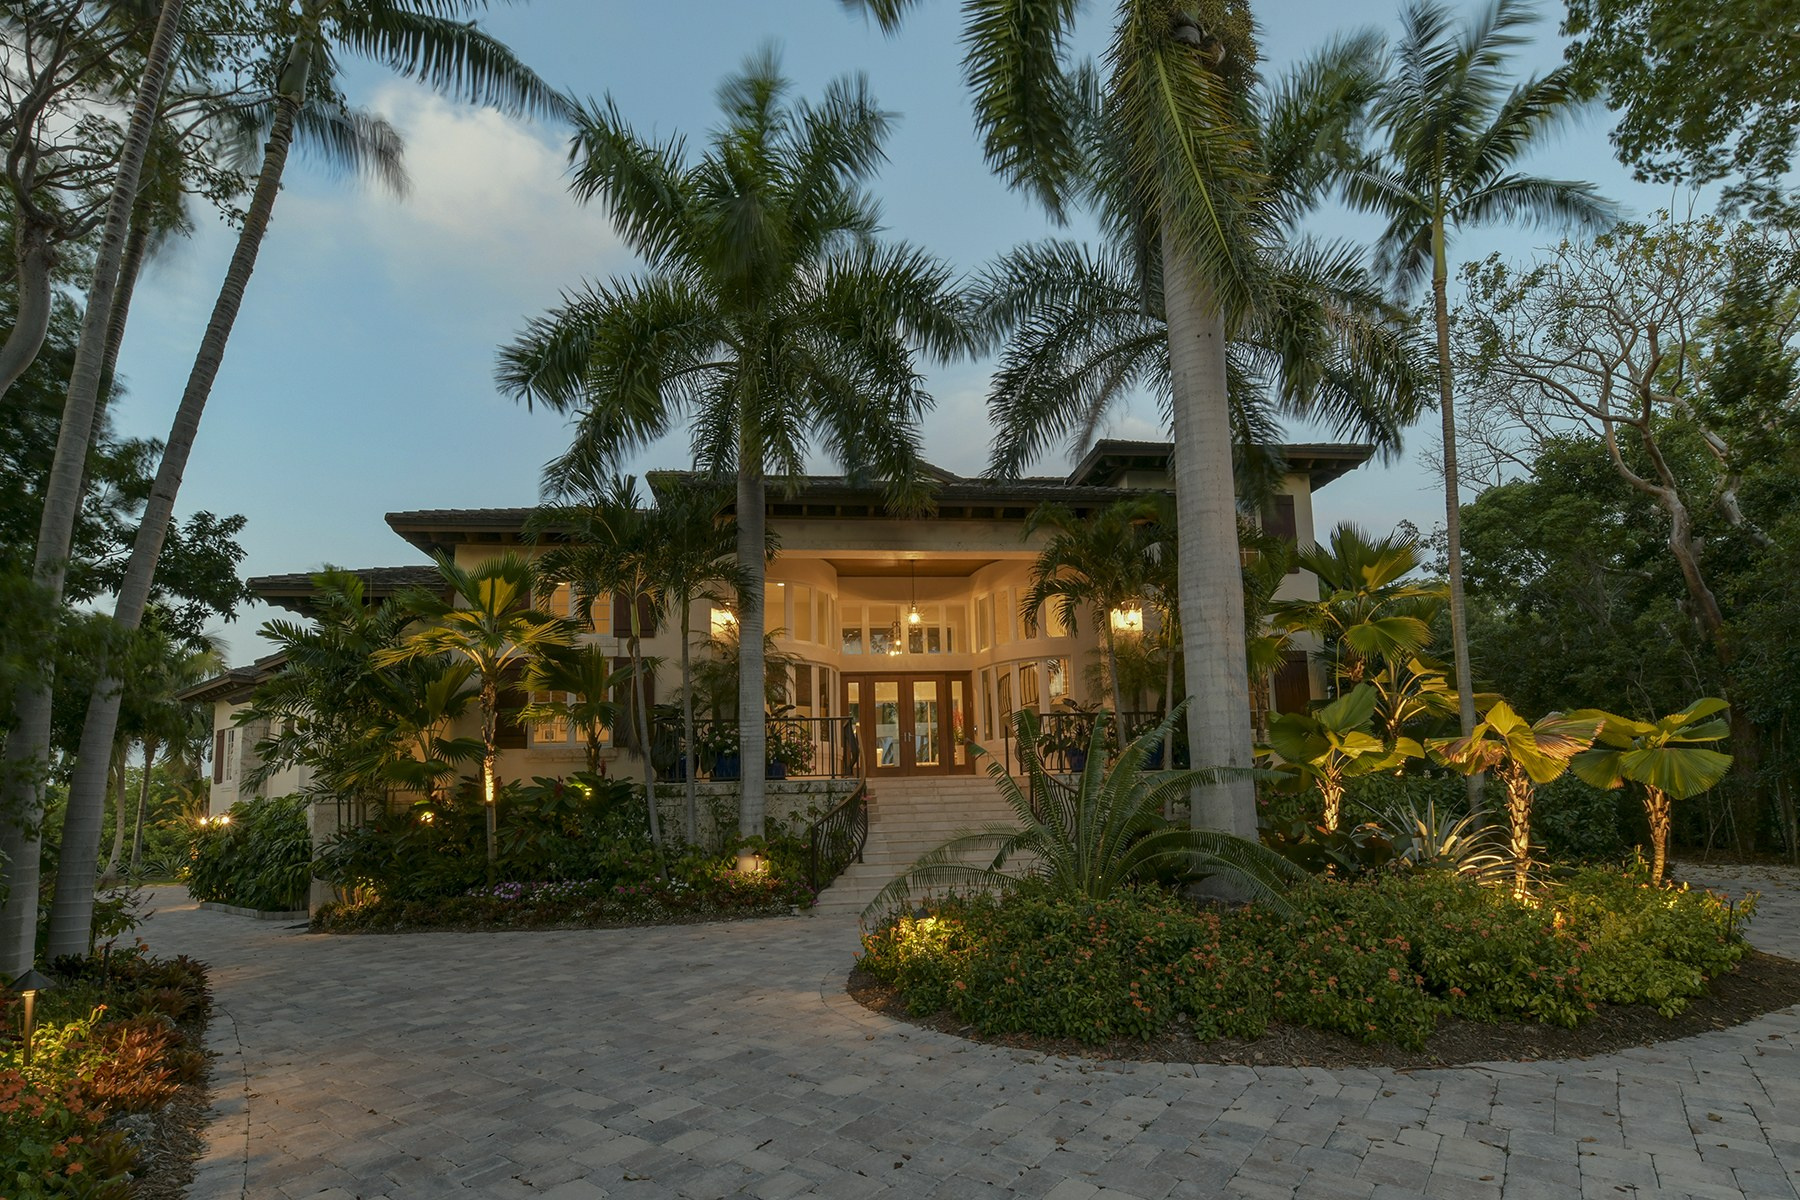 Single Family Homes for Sale at 24 Dispatch Creek Court, Key Largo, FL Key Largo, Florida 33037 United States